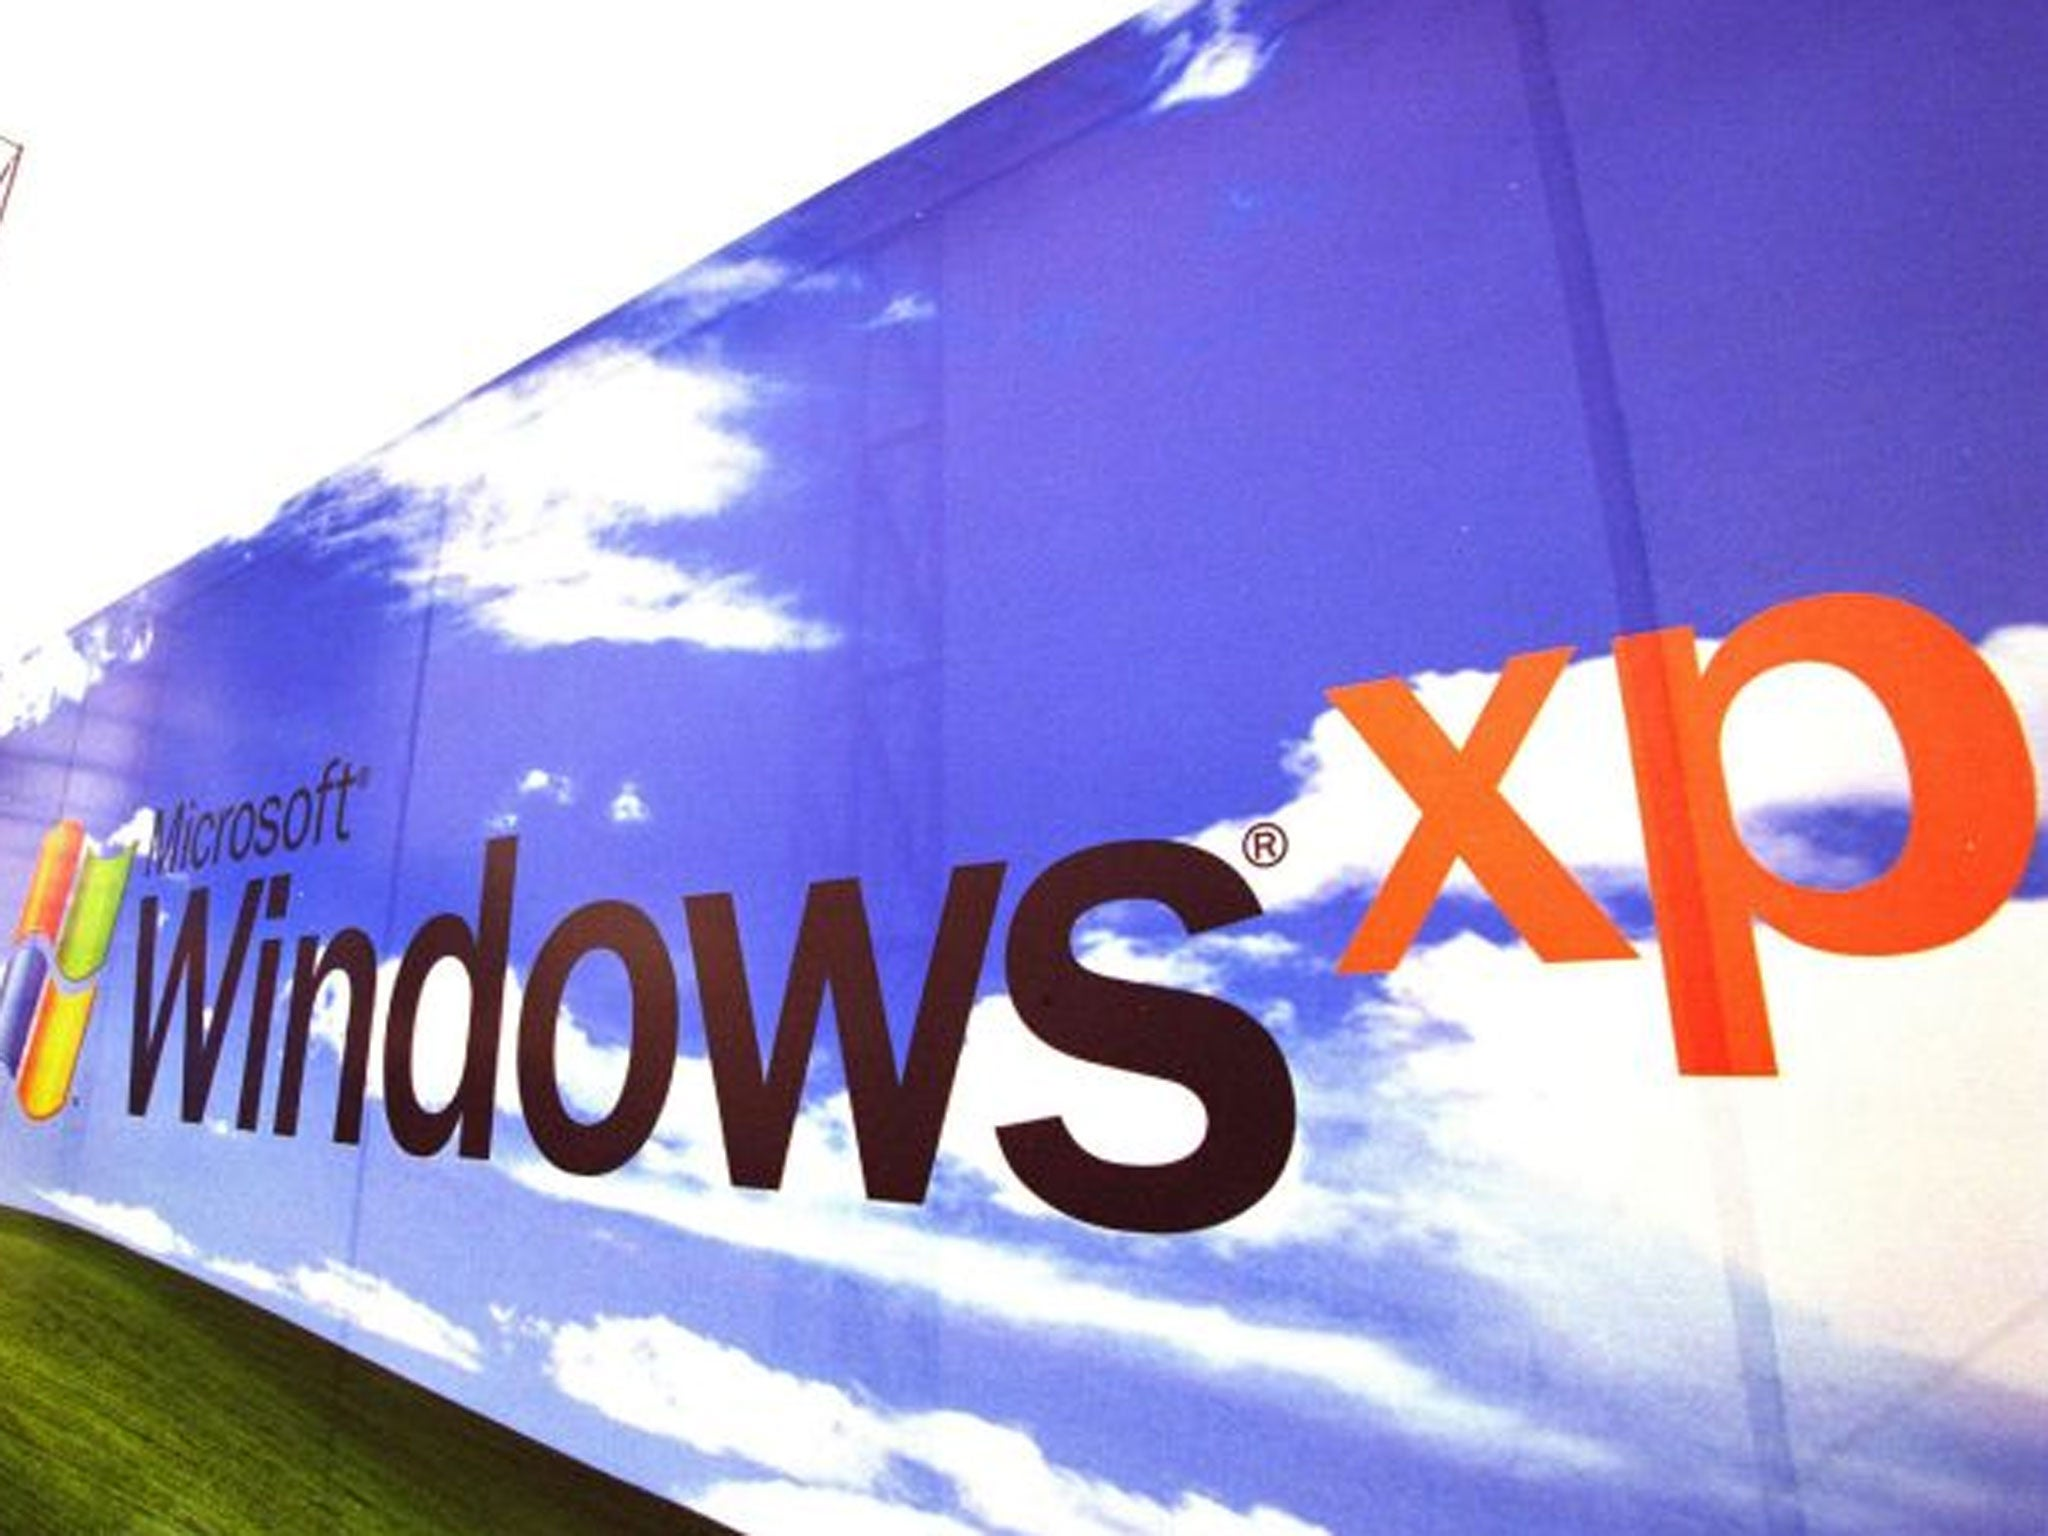 features of windows xp operating system pdf